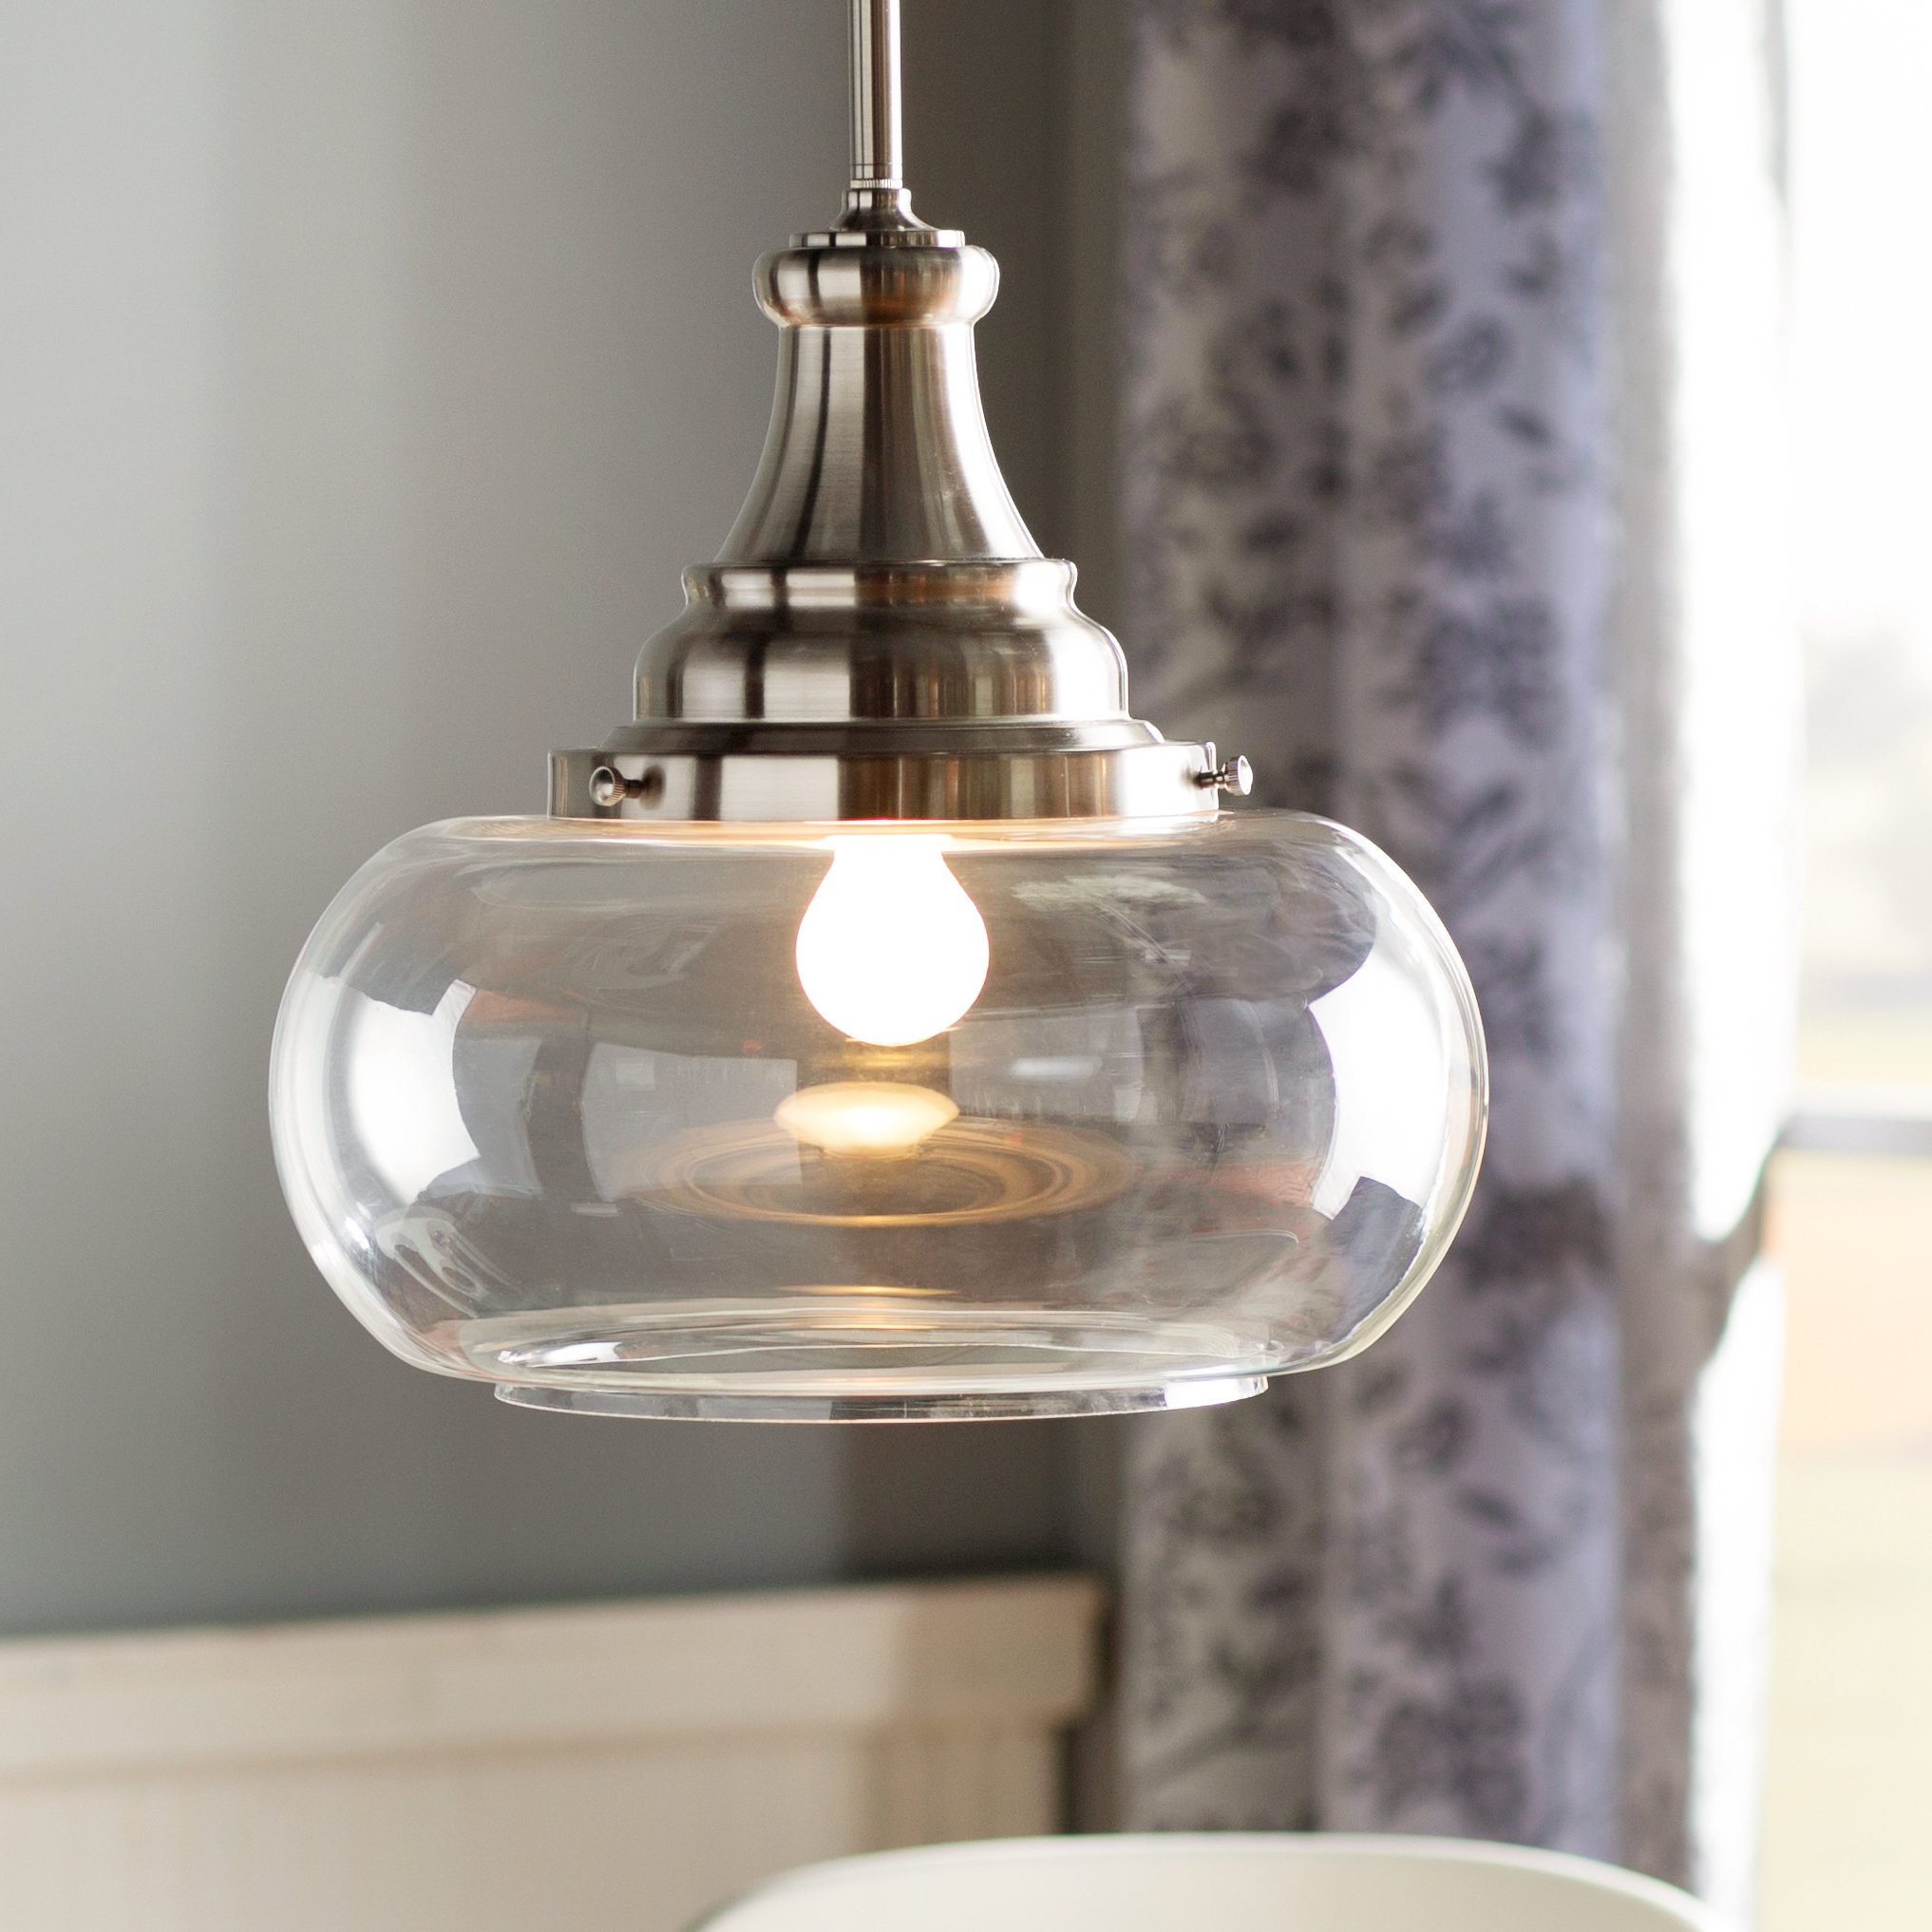 Well Liked 1 Light Single Dome Pendant With Abordale 1 Light Single Dome Pendants (View 19 of 20)